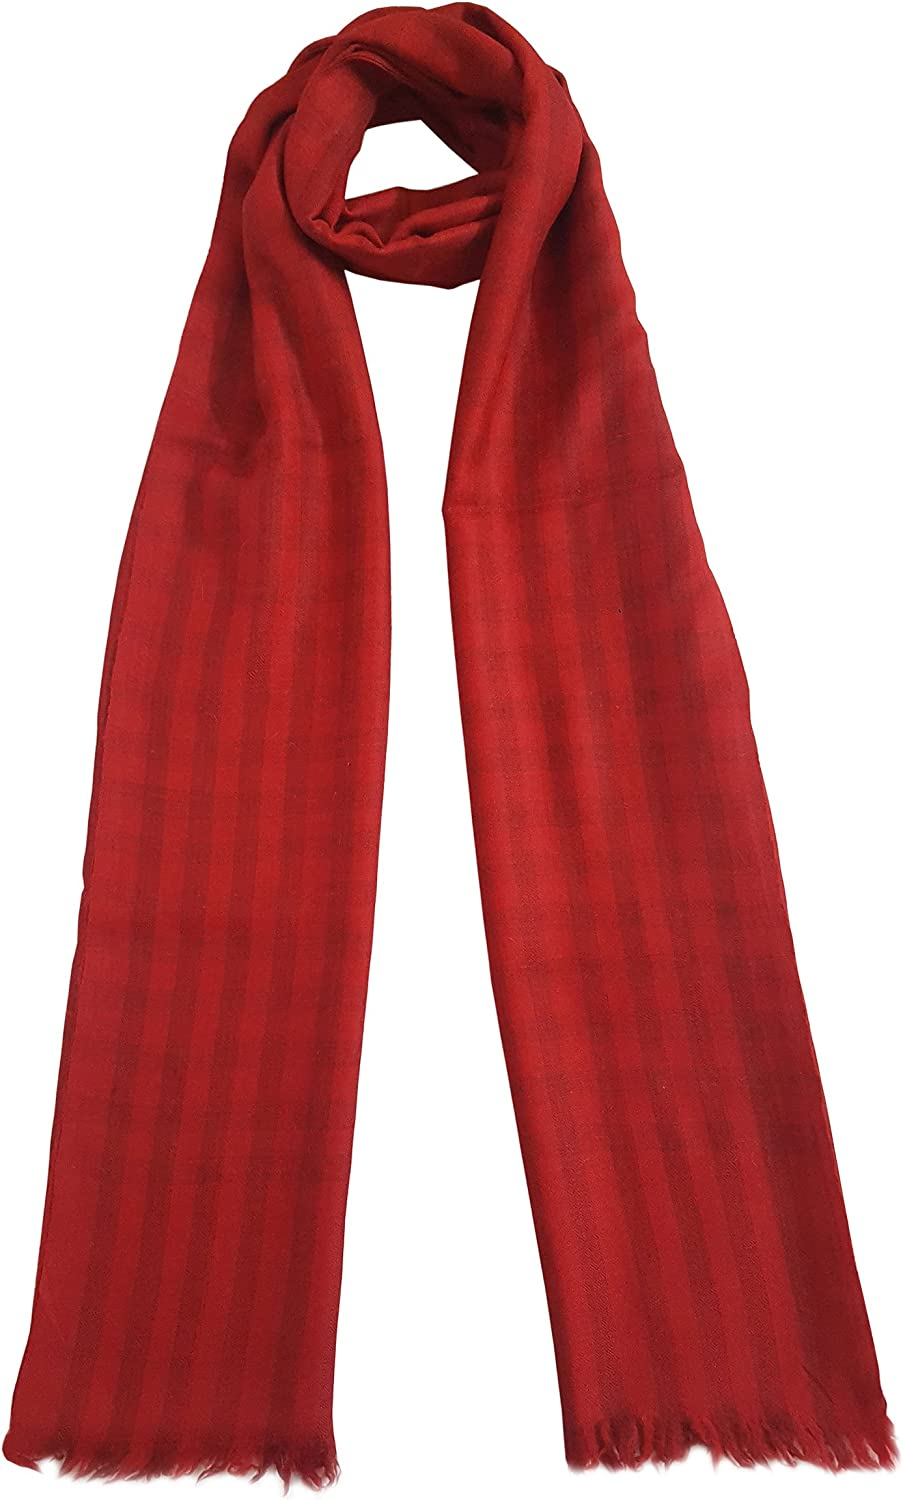 Mehrunnisa Handcrafted Pure Cashmere Pashmina Wool Stole Wrap  Unisex